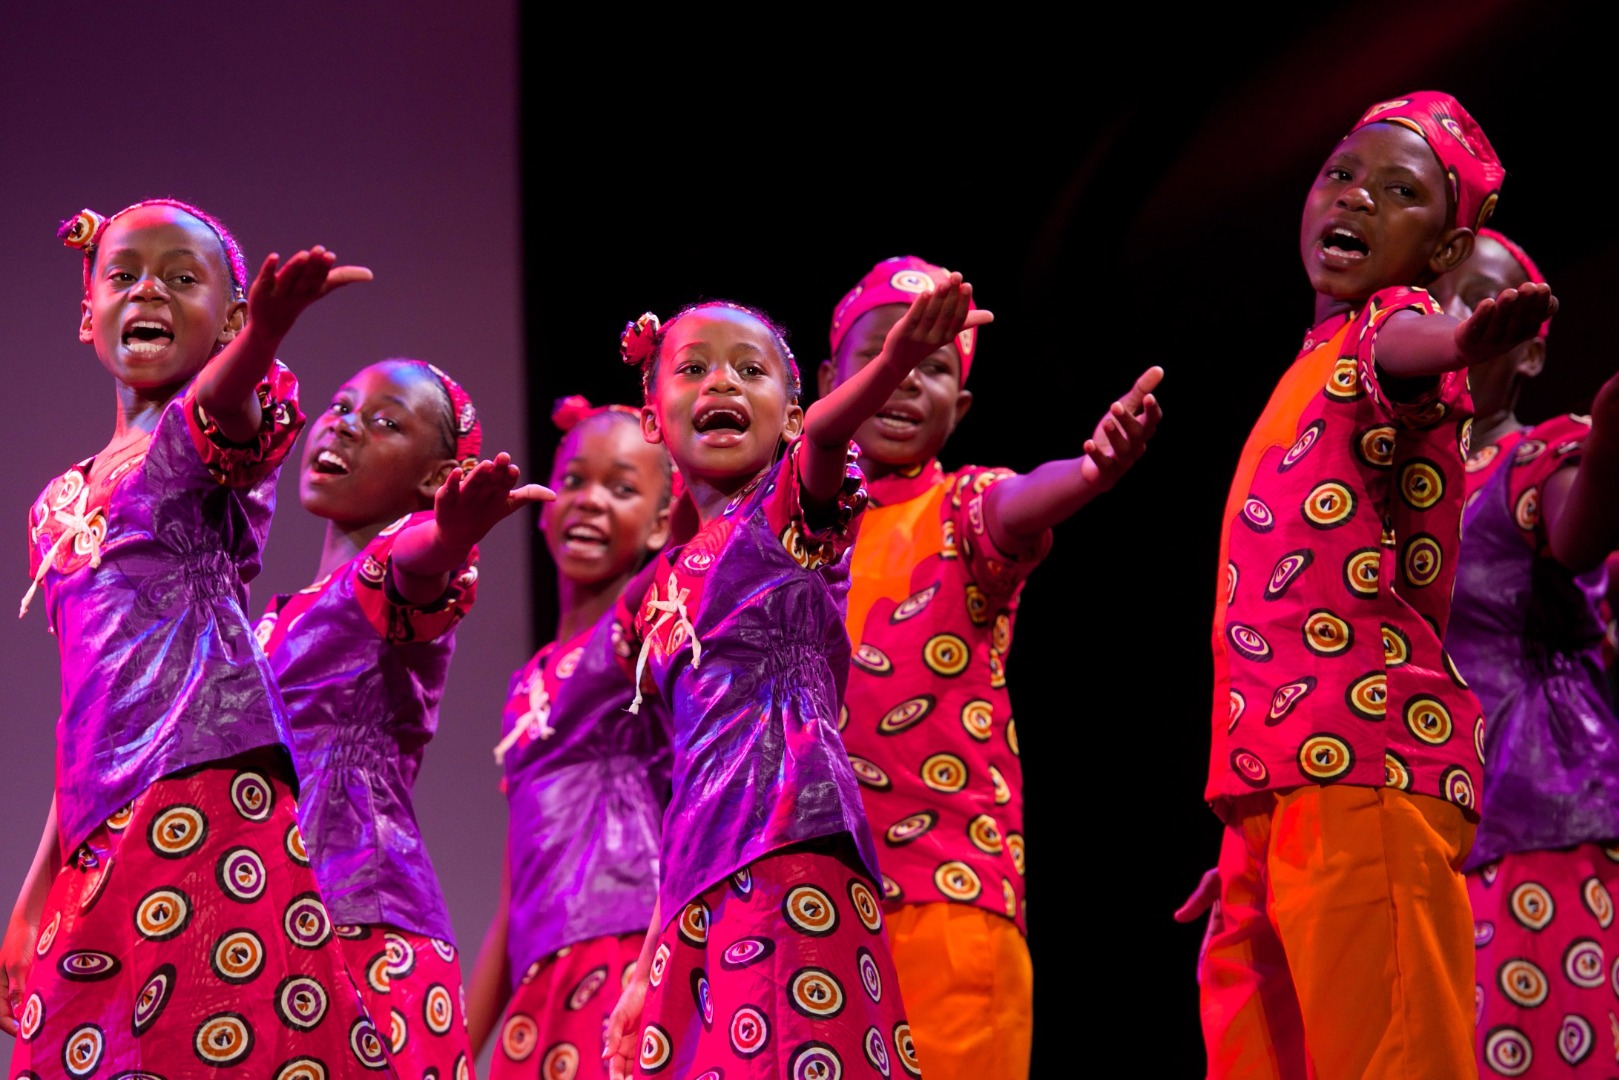 Singing Children of Africa Choir wow crowd with Paisley return